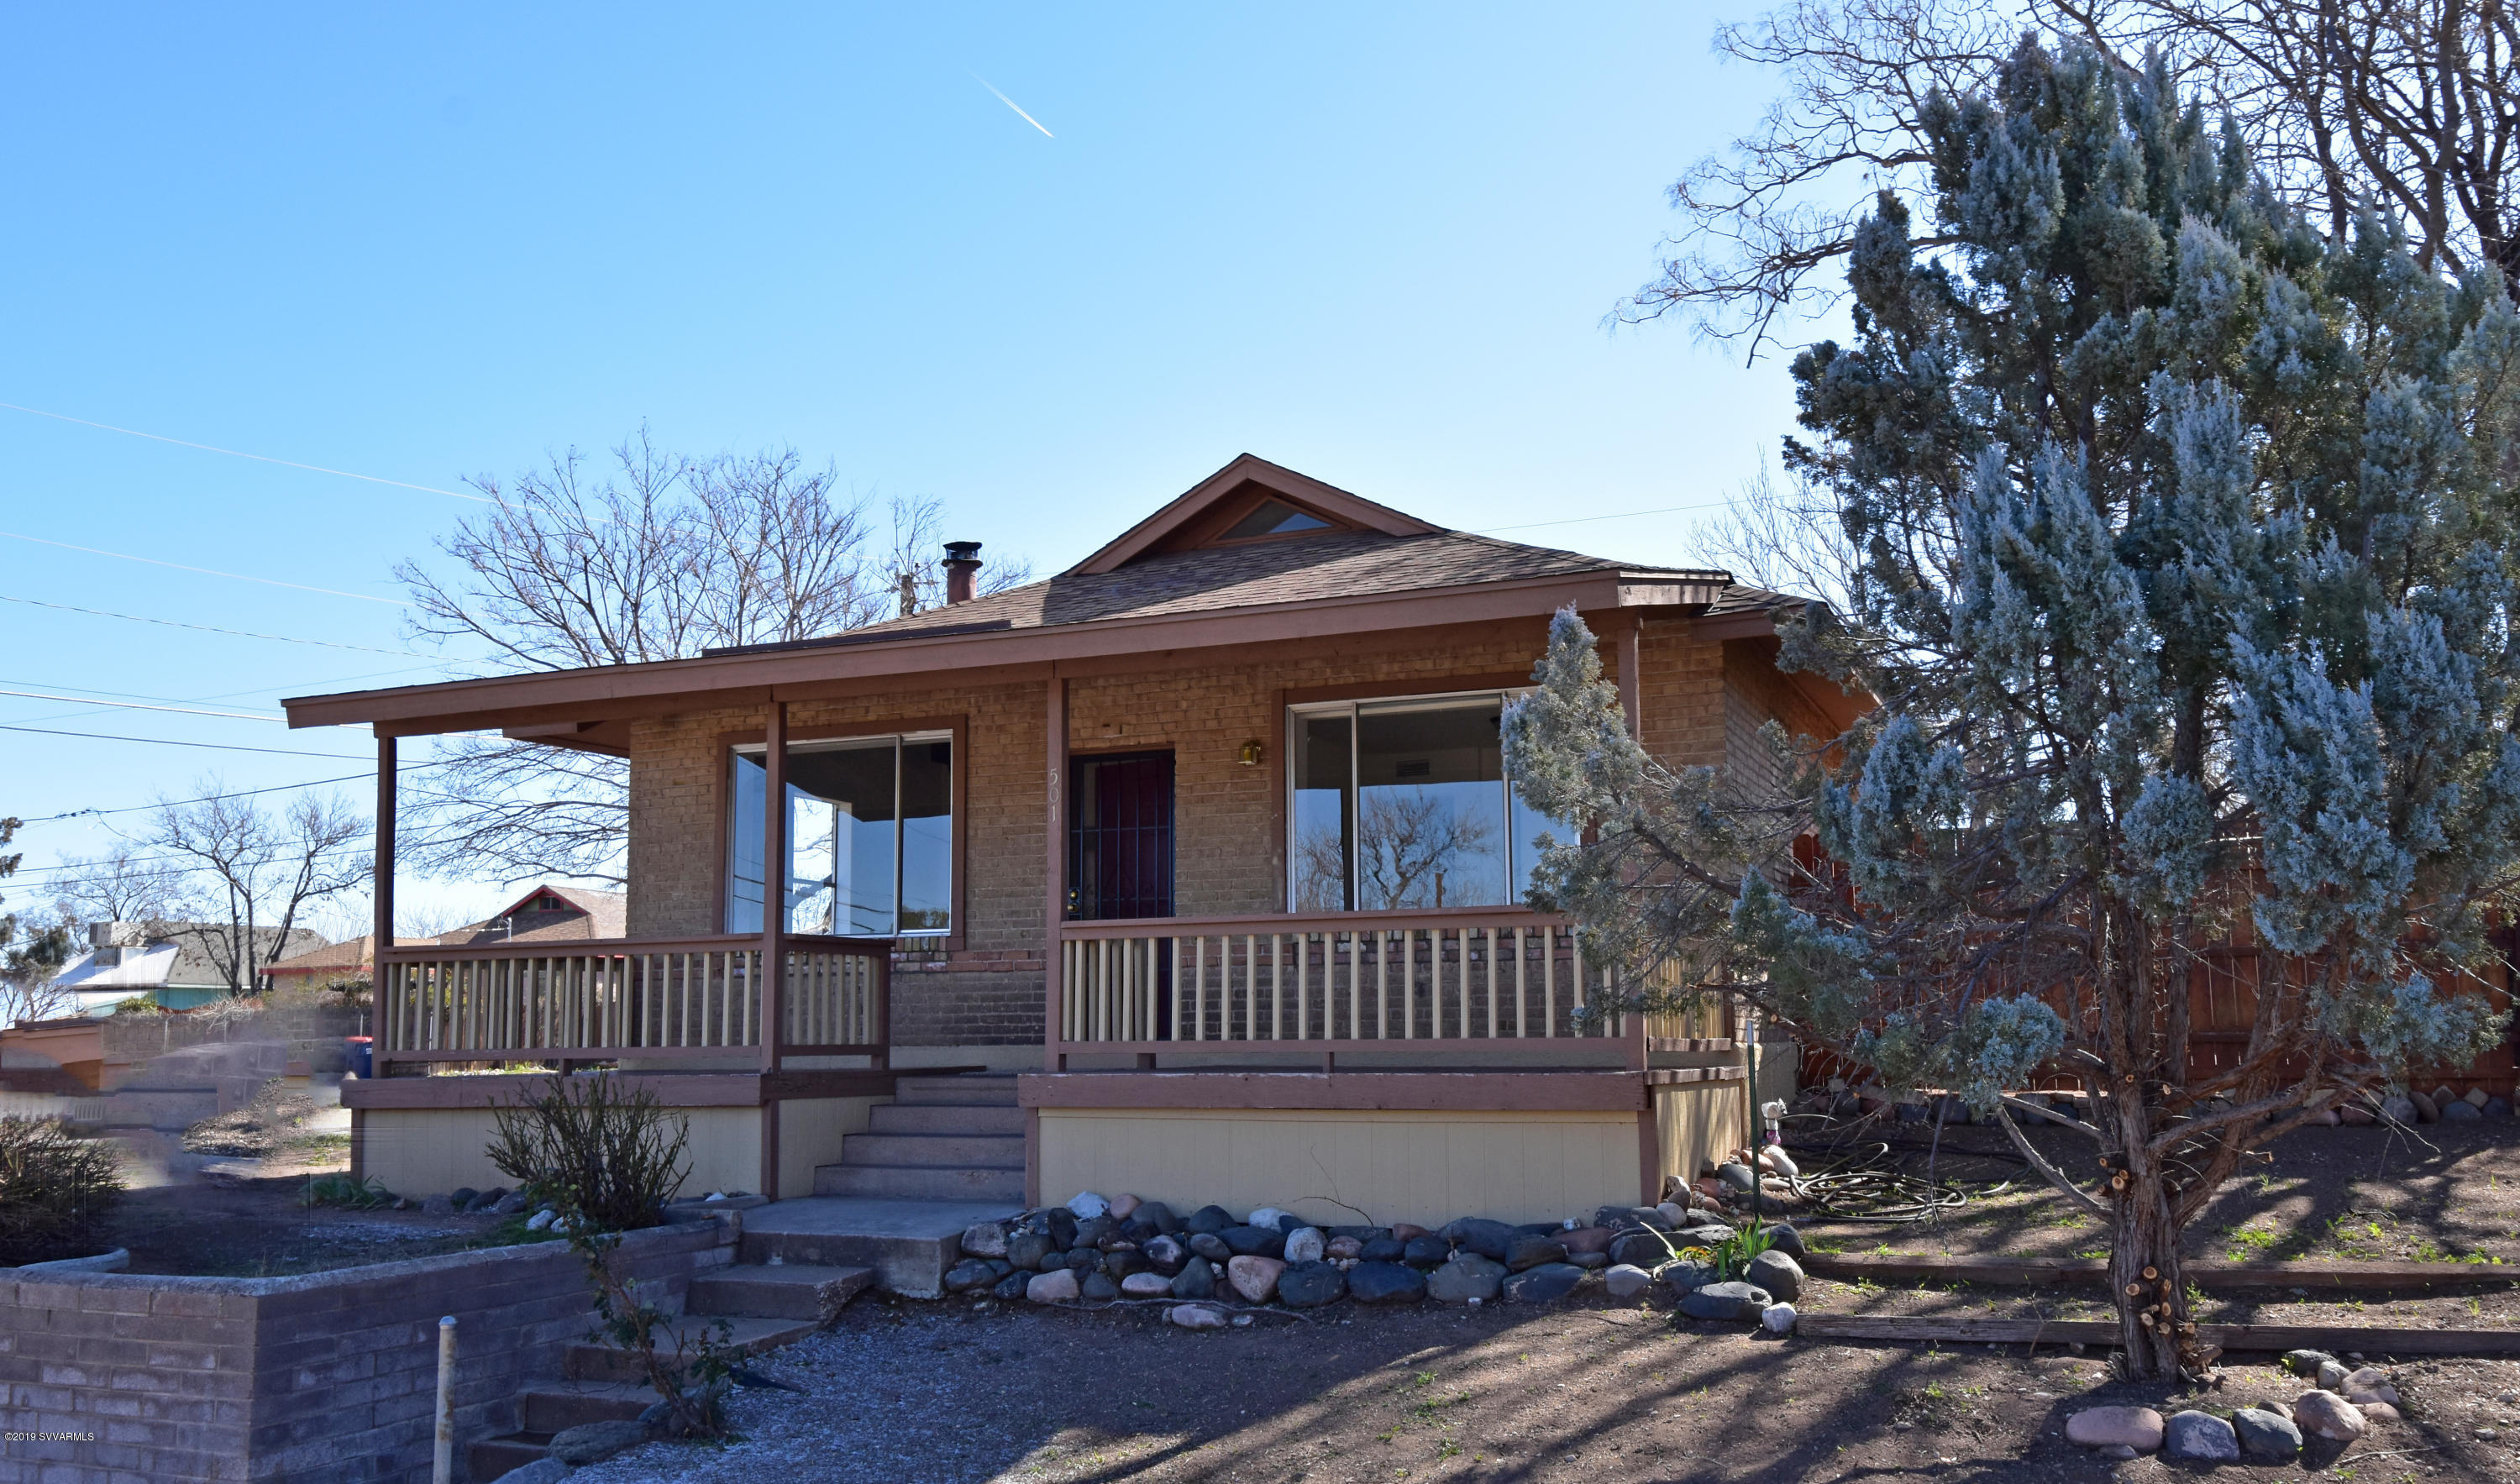 501 First North St Clarkdale, AZ 86324